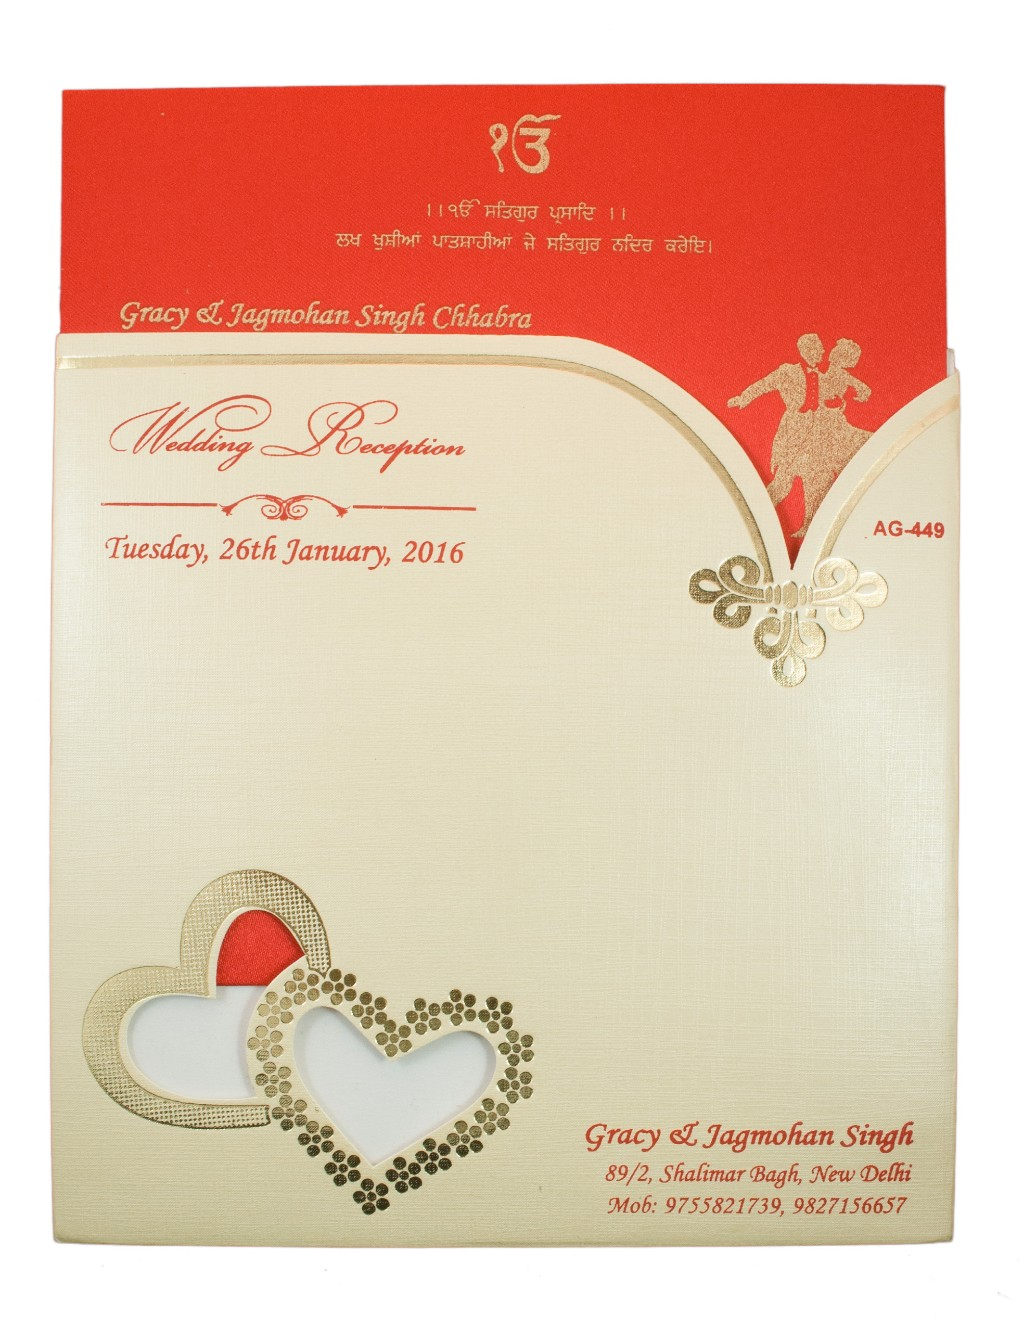 Wedding invite in cream and red with cutout designs